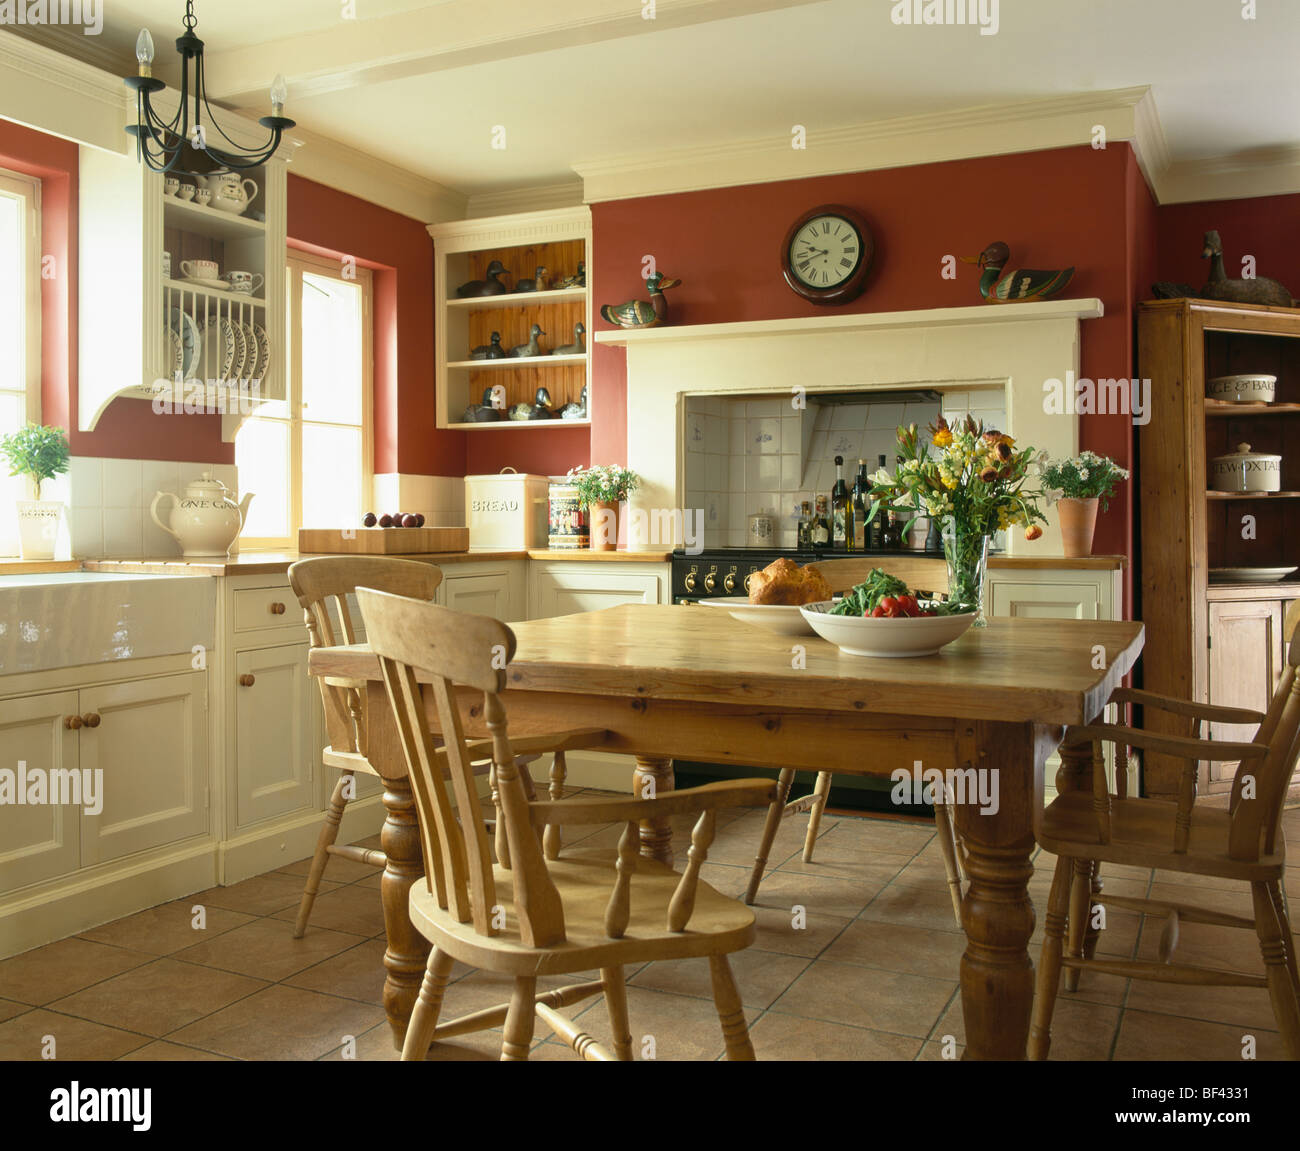 Pine Table And Chairs In Traditional Red Country Kitchen